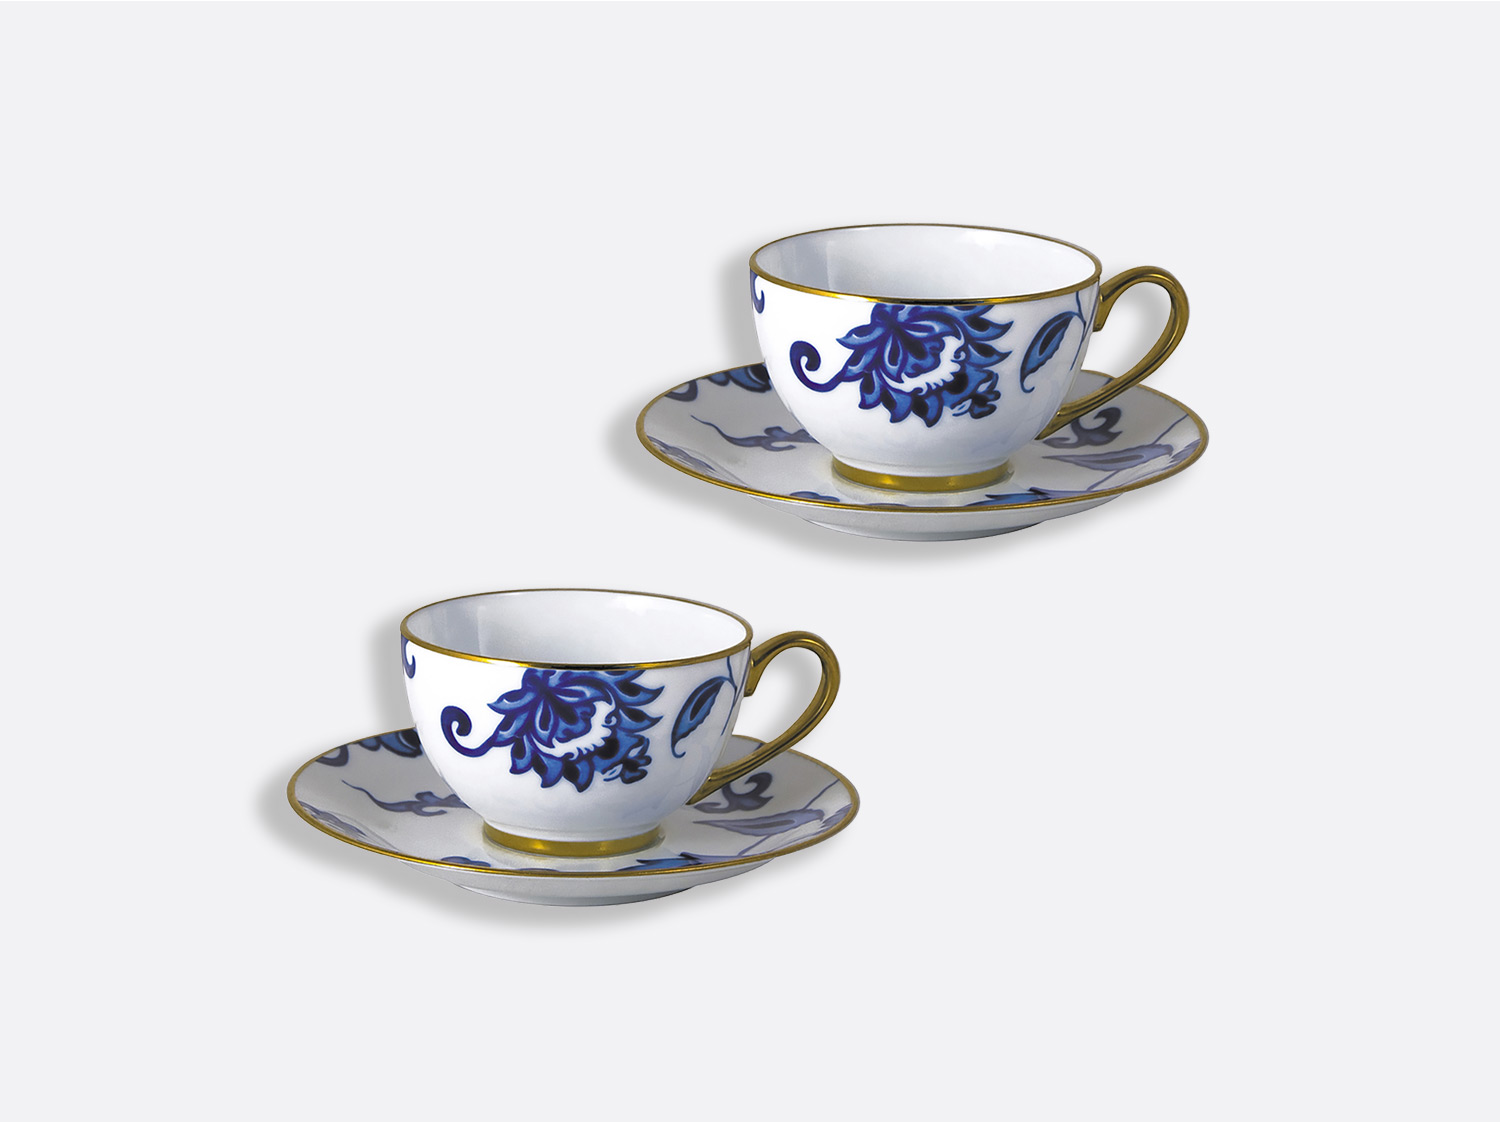 Coffret de tasses & soucoupes thé 13 cl - Coffret de 2 en porcelaine de la collection Prince bleu Bernardaud